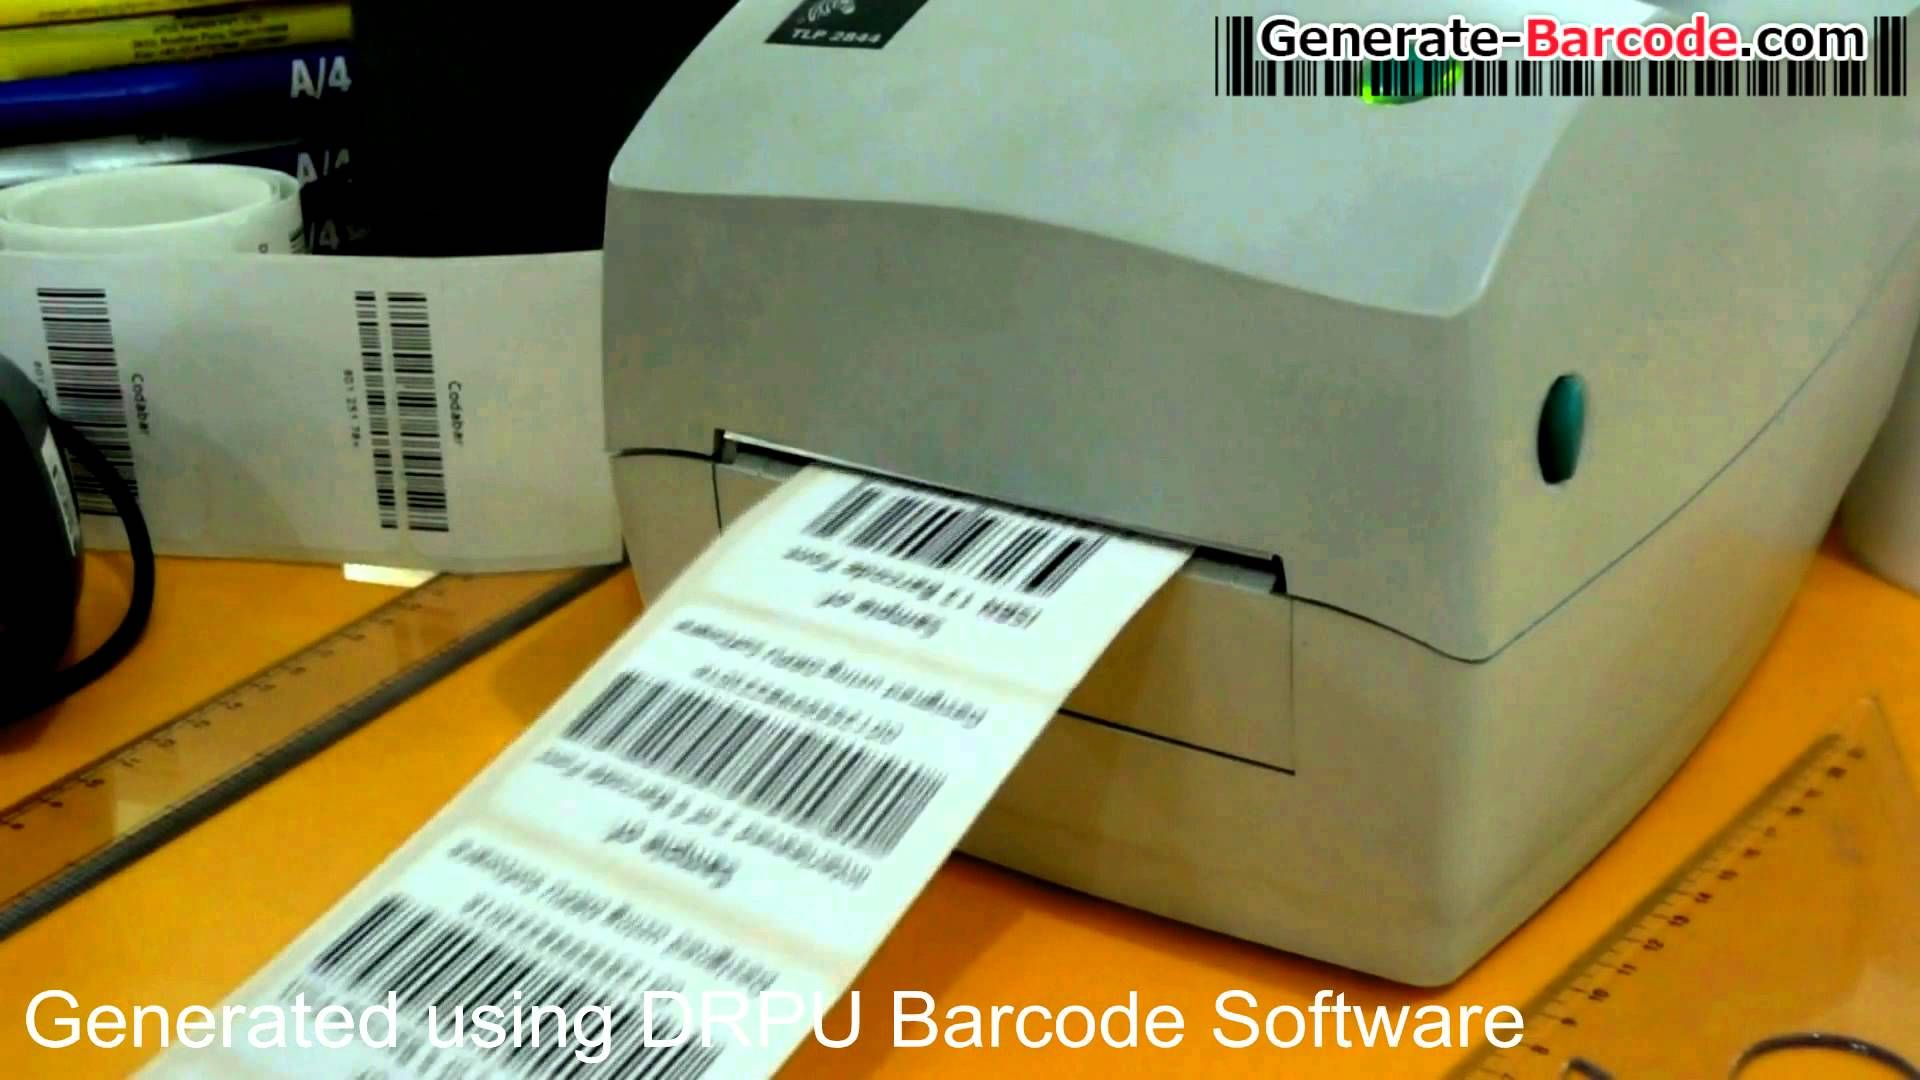 Learn to design barcode labels for books using ISBN